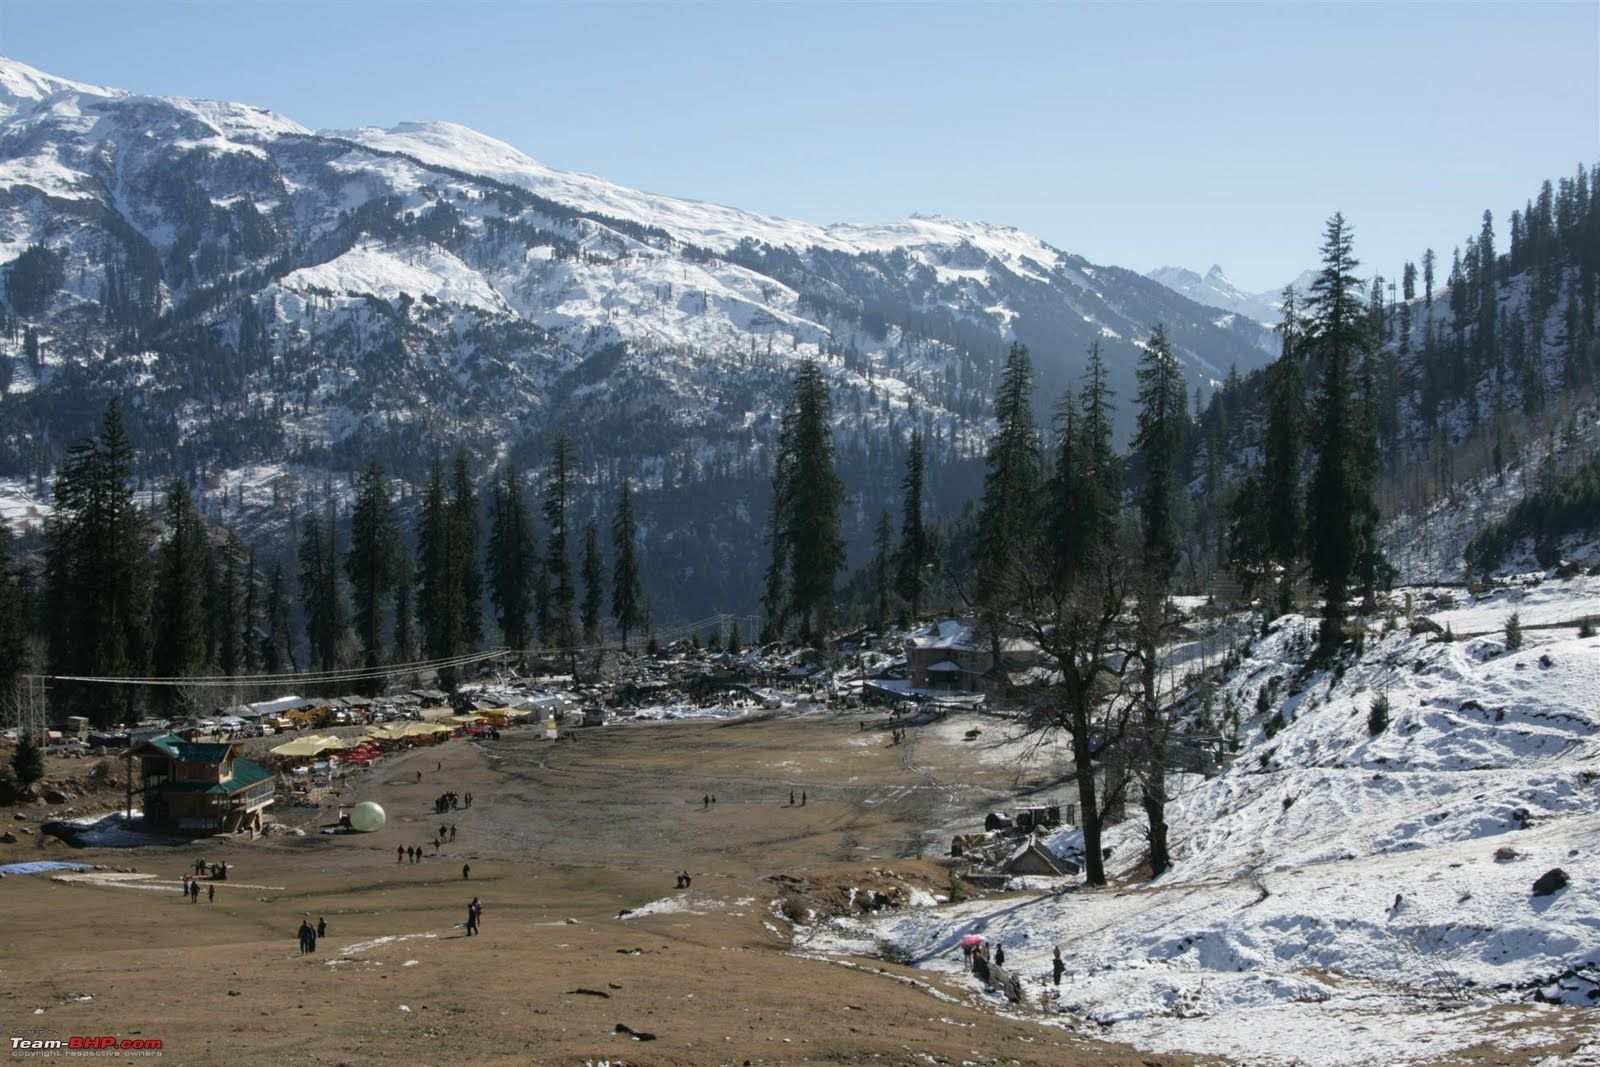 #Himachal tour #package include wonderful places with flowing rivers, valleys, attractive temples and lush green areas. Availing the package means you dig a golden chance to explore picturesque hill stations,